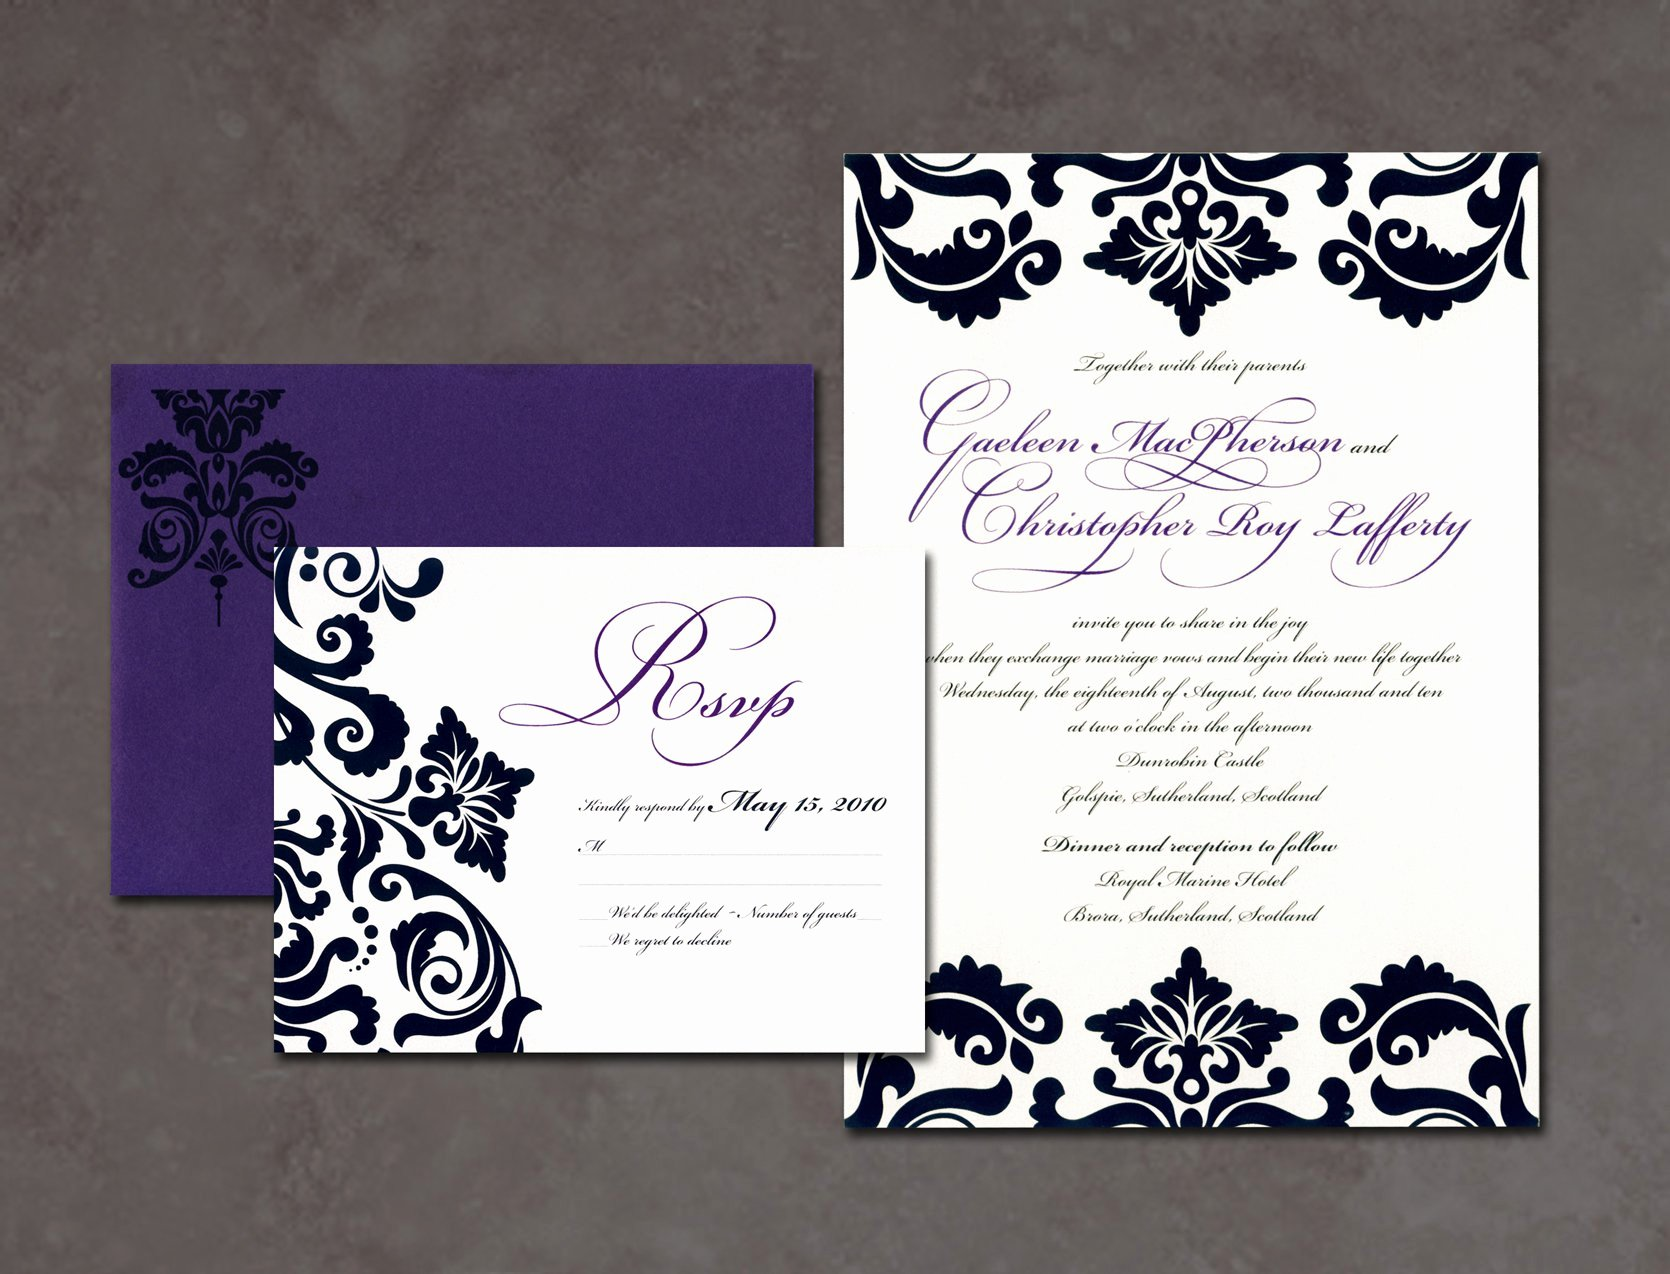 Wedding Invitation Template Photoshop Best Of Wedding Invitation Free Wedding Invitation Templates